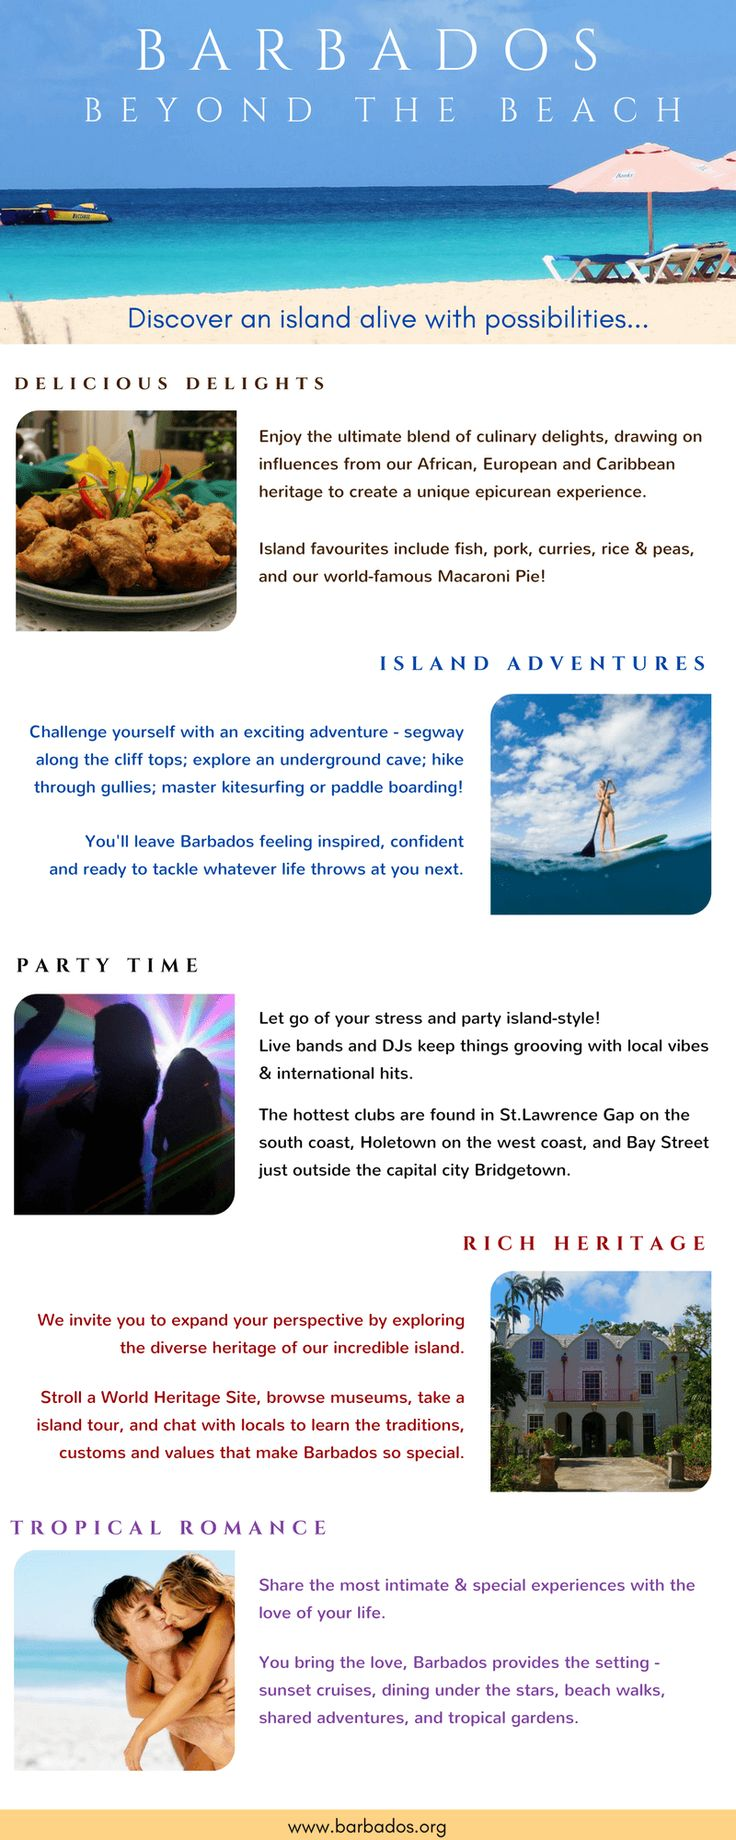 Barbados Beyond The Beach: Step beyond the beautiful beaches for adventure, culinary delights, a rich heritage, partying Caribbean-style, and island romance!